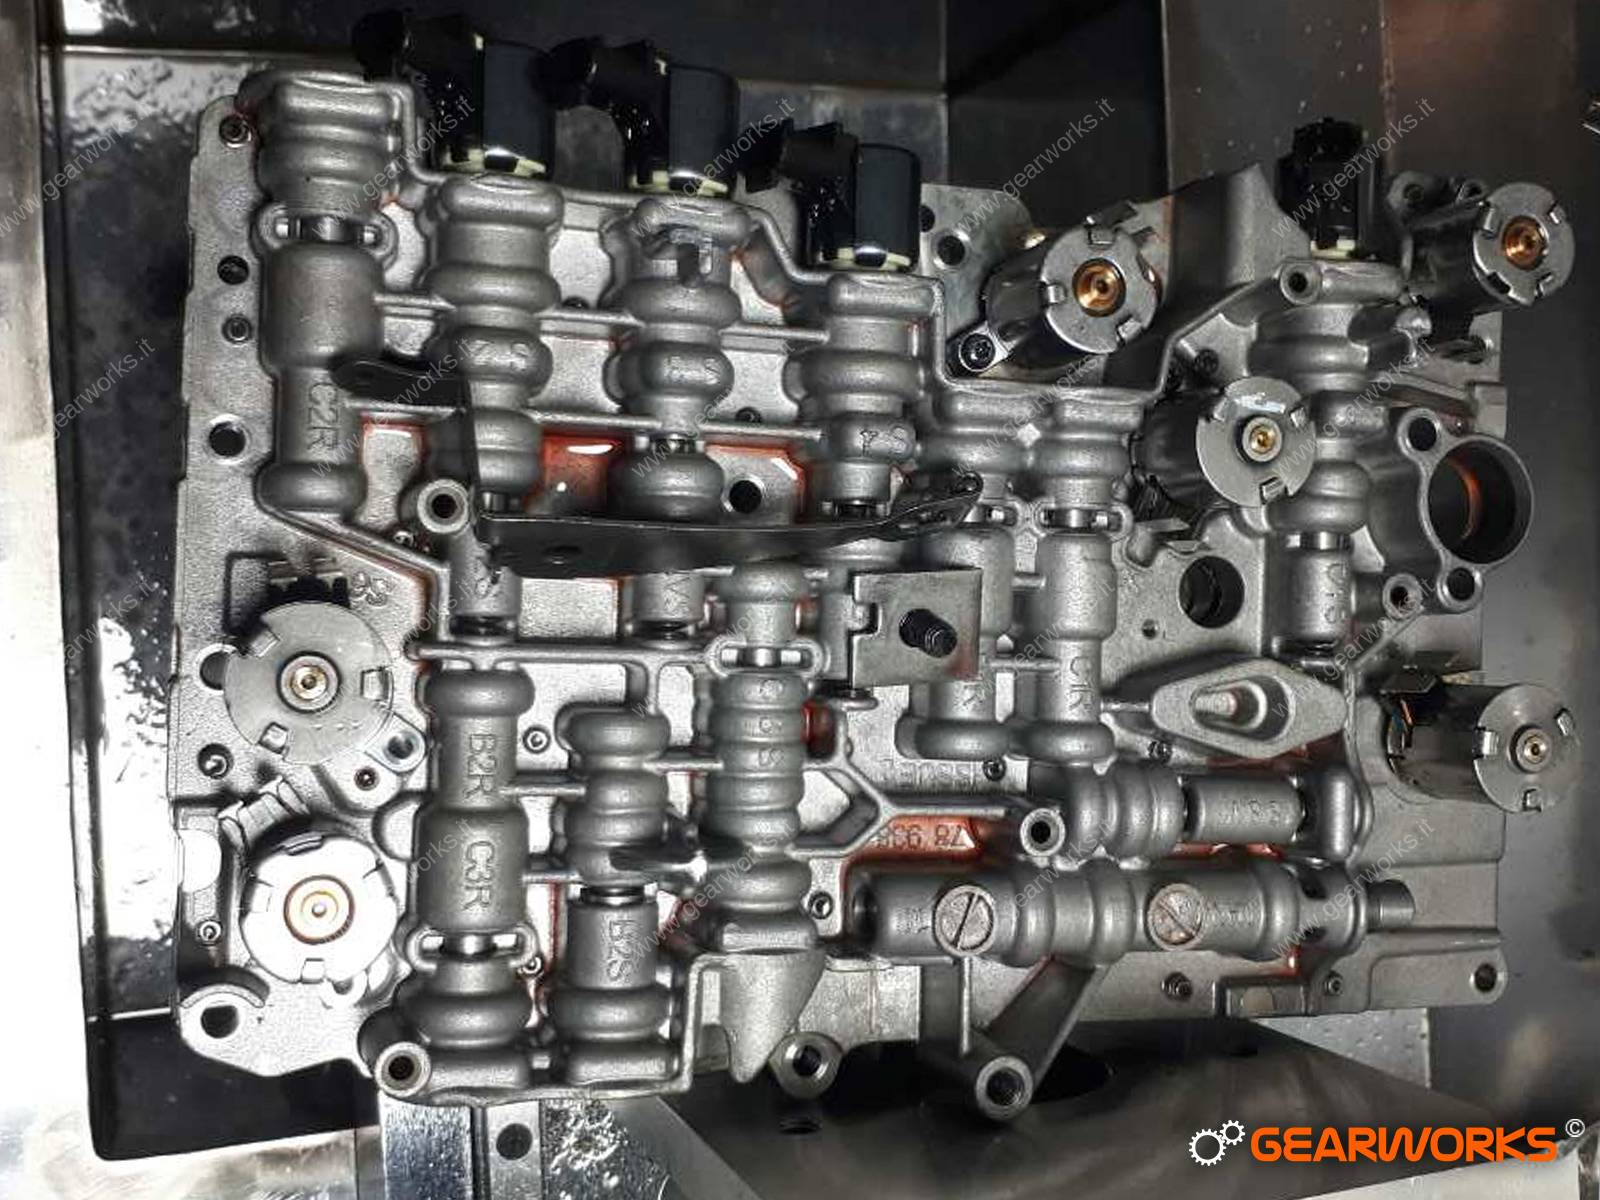 PROBLEMA CAMBIO SSANGYONG, M11 GEARBOX, PROBLEMA CAMBIO KORANDO, SSANGYONG KORANDO, COLPI CAMBIO KORANDO, CAMBIO ROTTO KORANDO, PROBLEMA KORANDO, RIPARAZIONE CAMBIO KORANDO, BERGAMO, REVISIONE CAMBI, P071F KORANDO, P0731 KORANDO, P0732 KORANDO, P0733 KORANDO